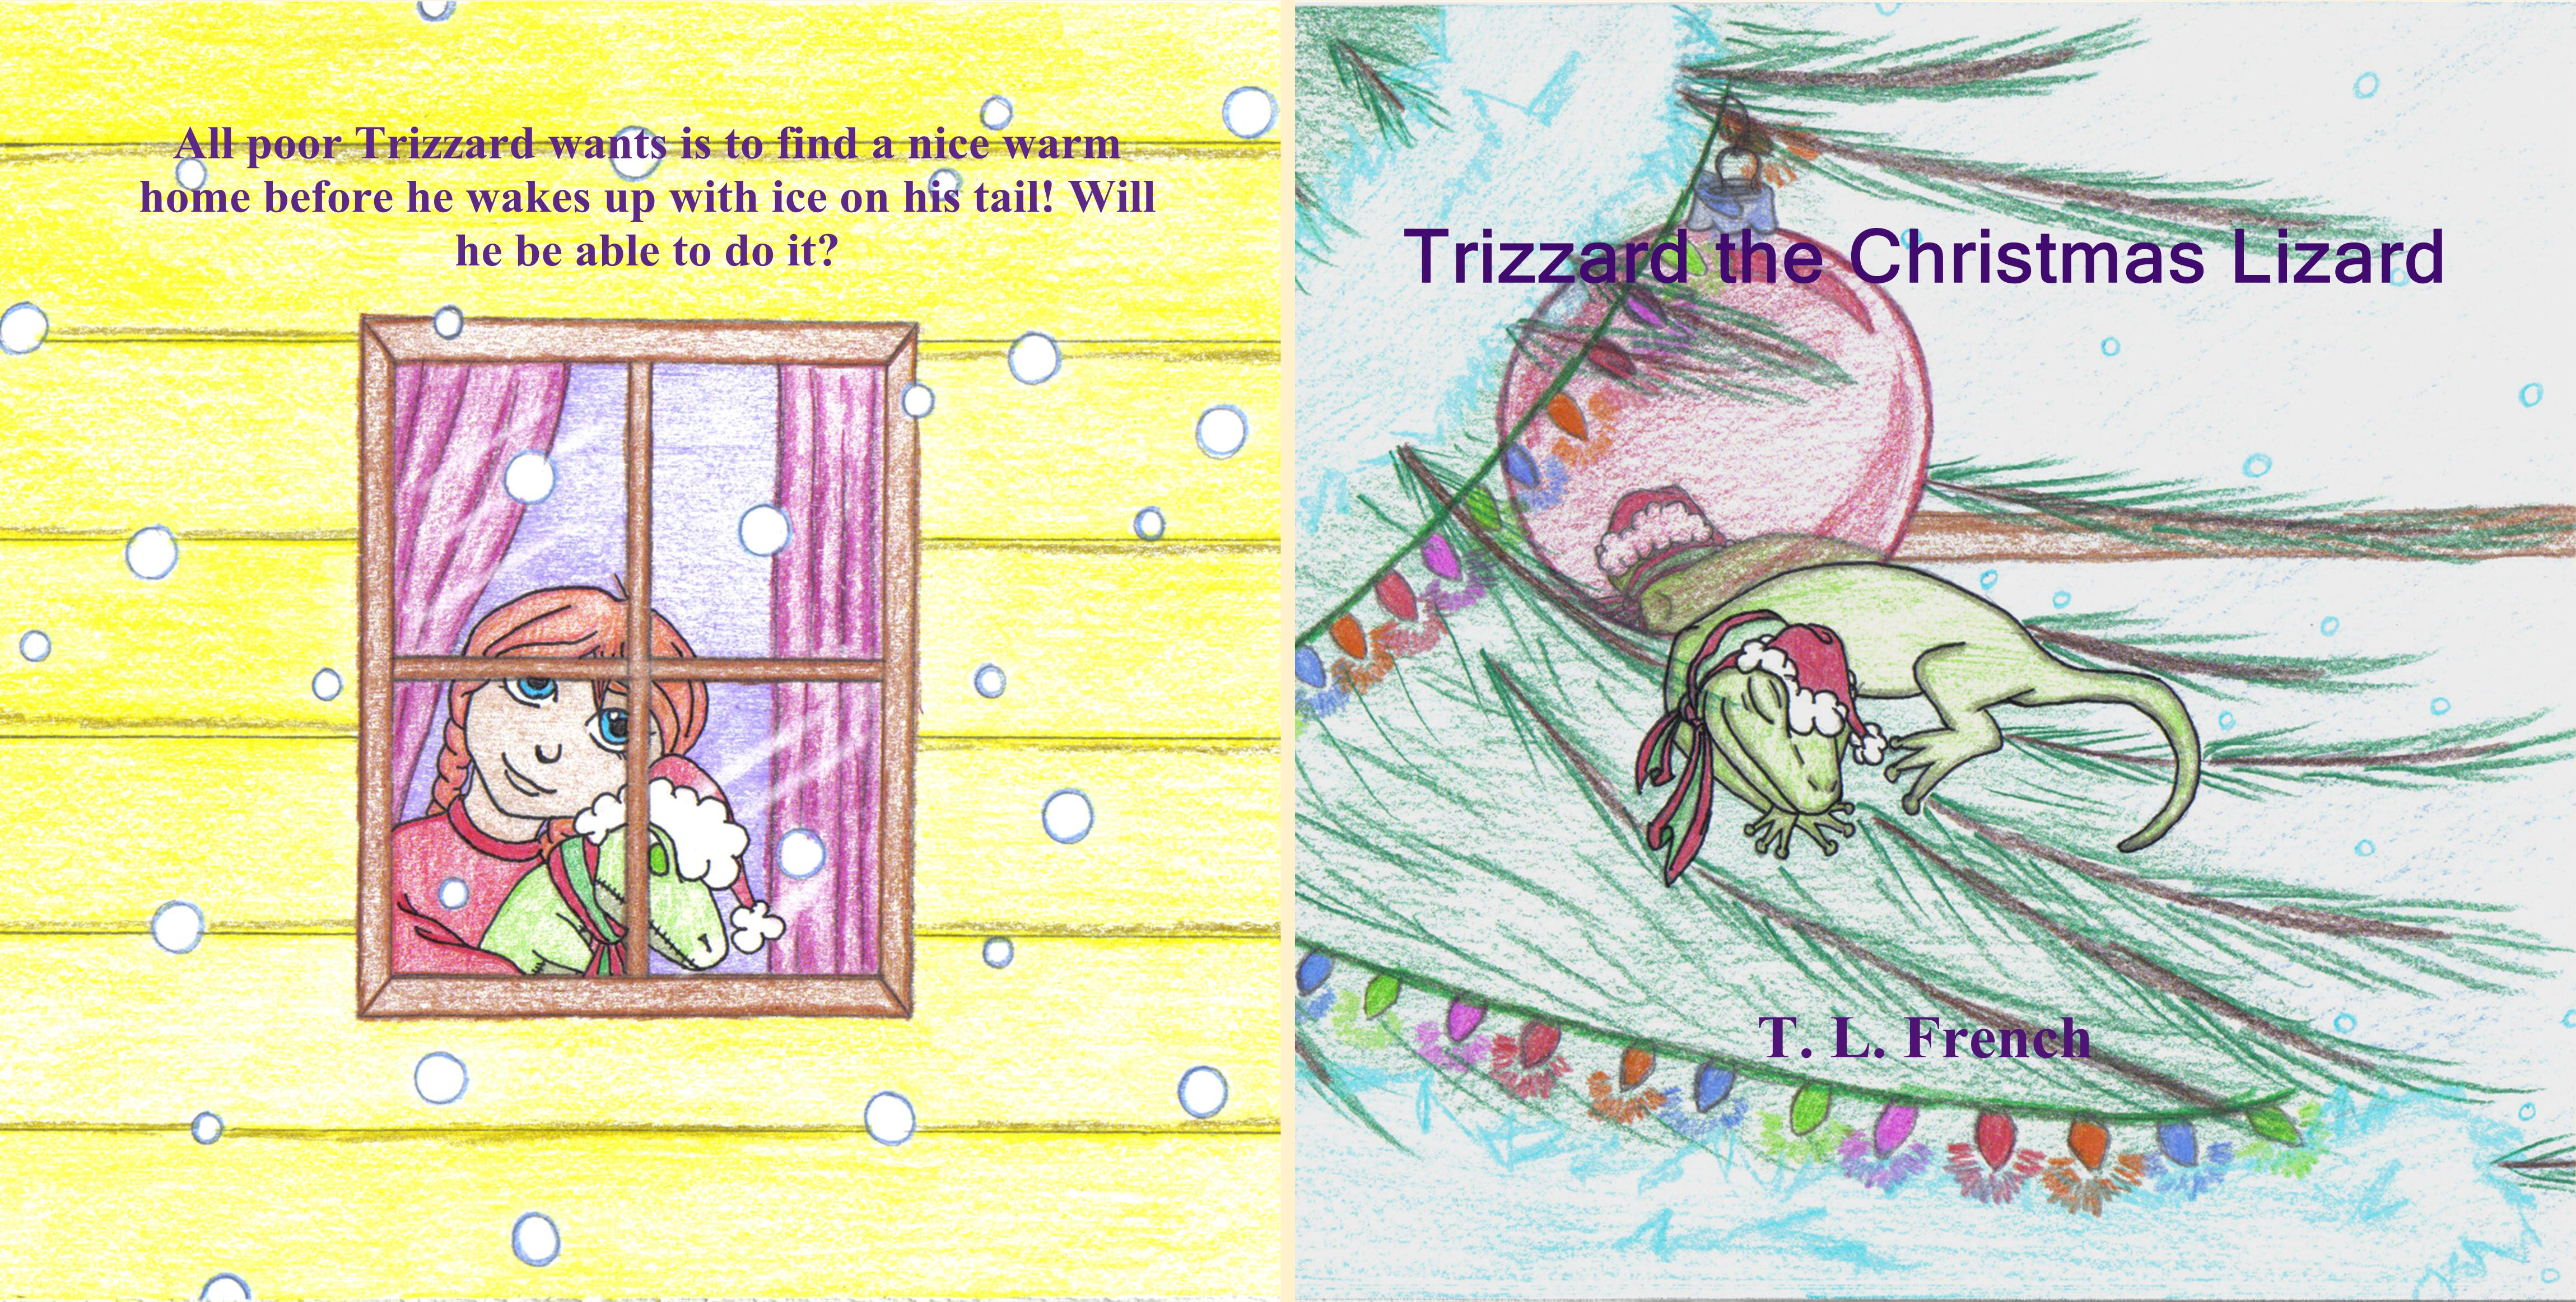 Trizzard the Christmas Lizard cover image